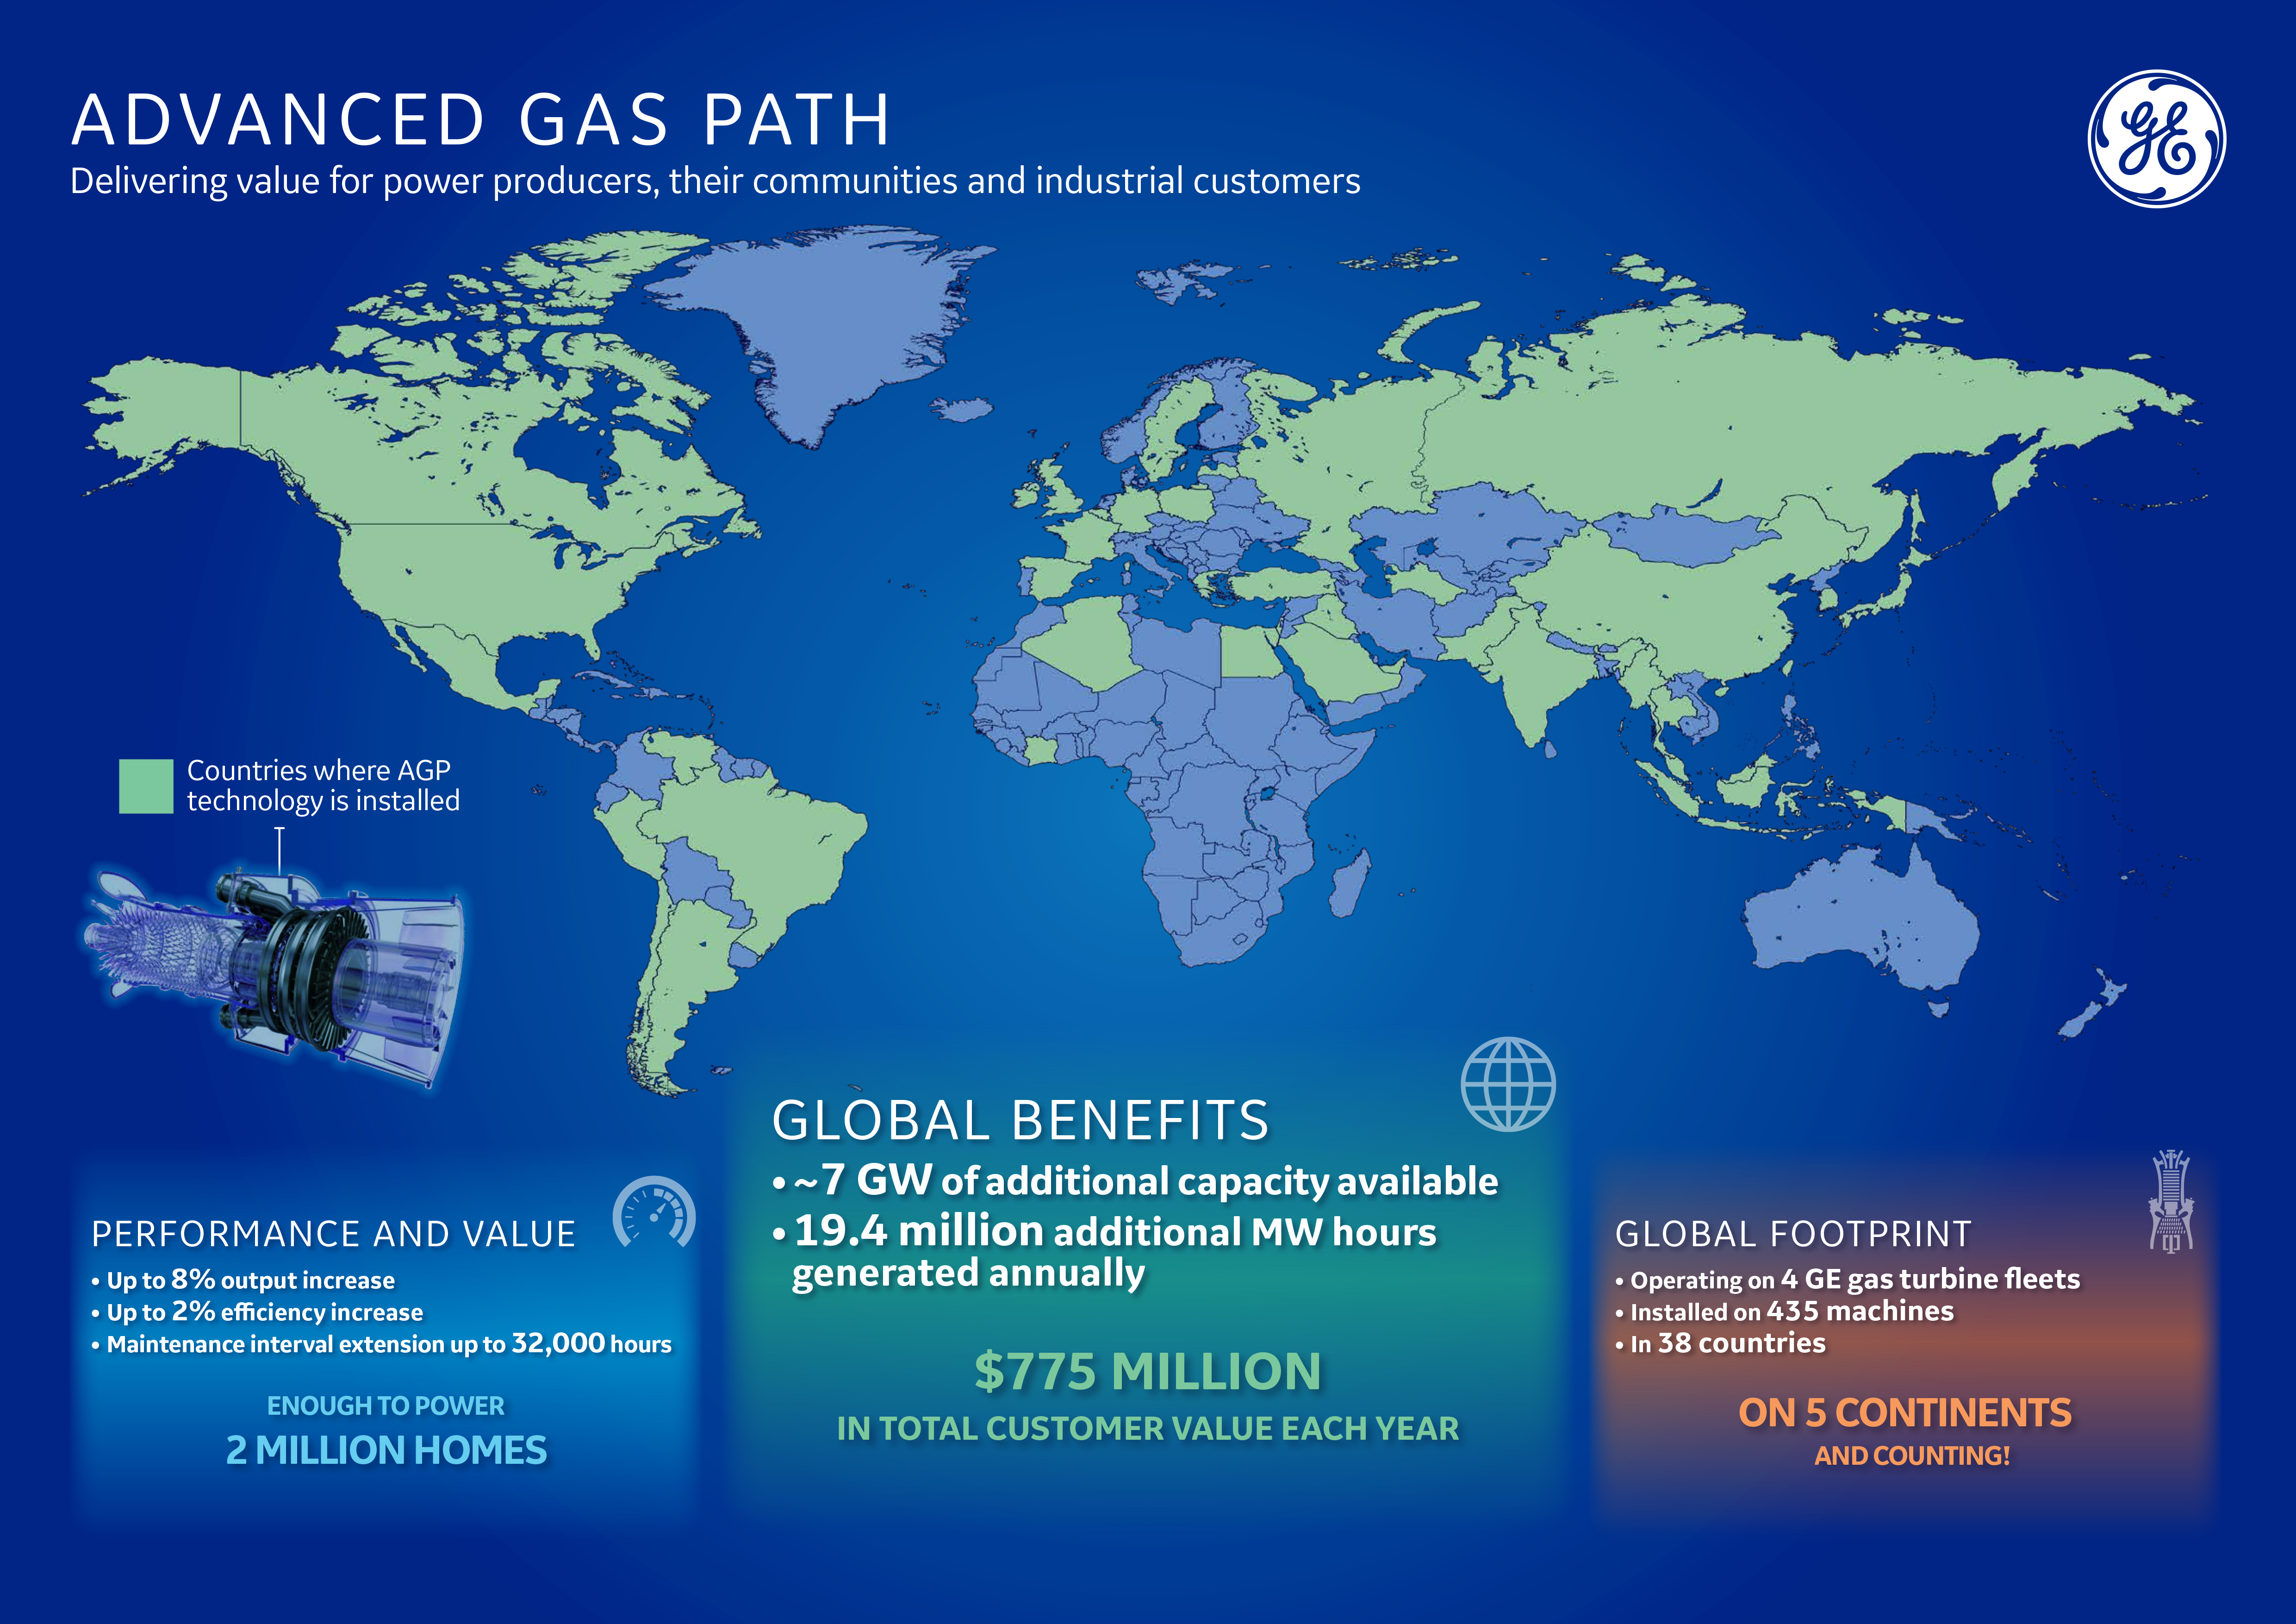 GEs Advanced Gas Path Upgrades Generate 775 Million In Total